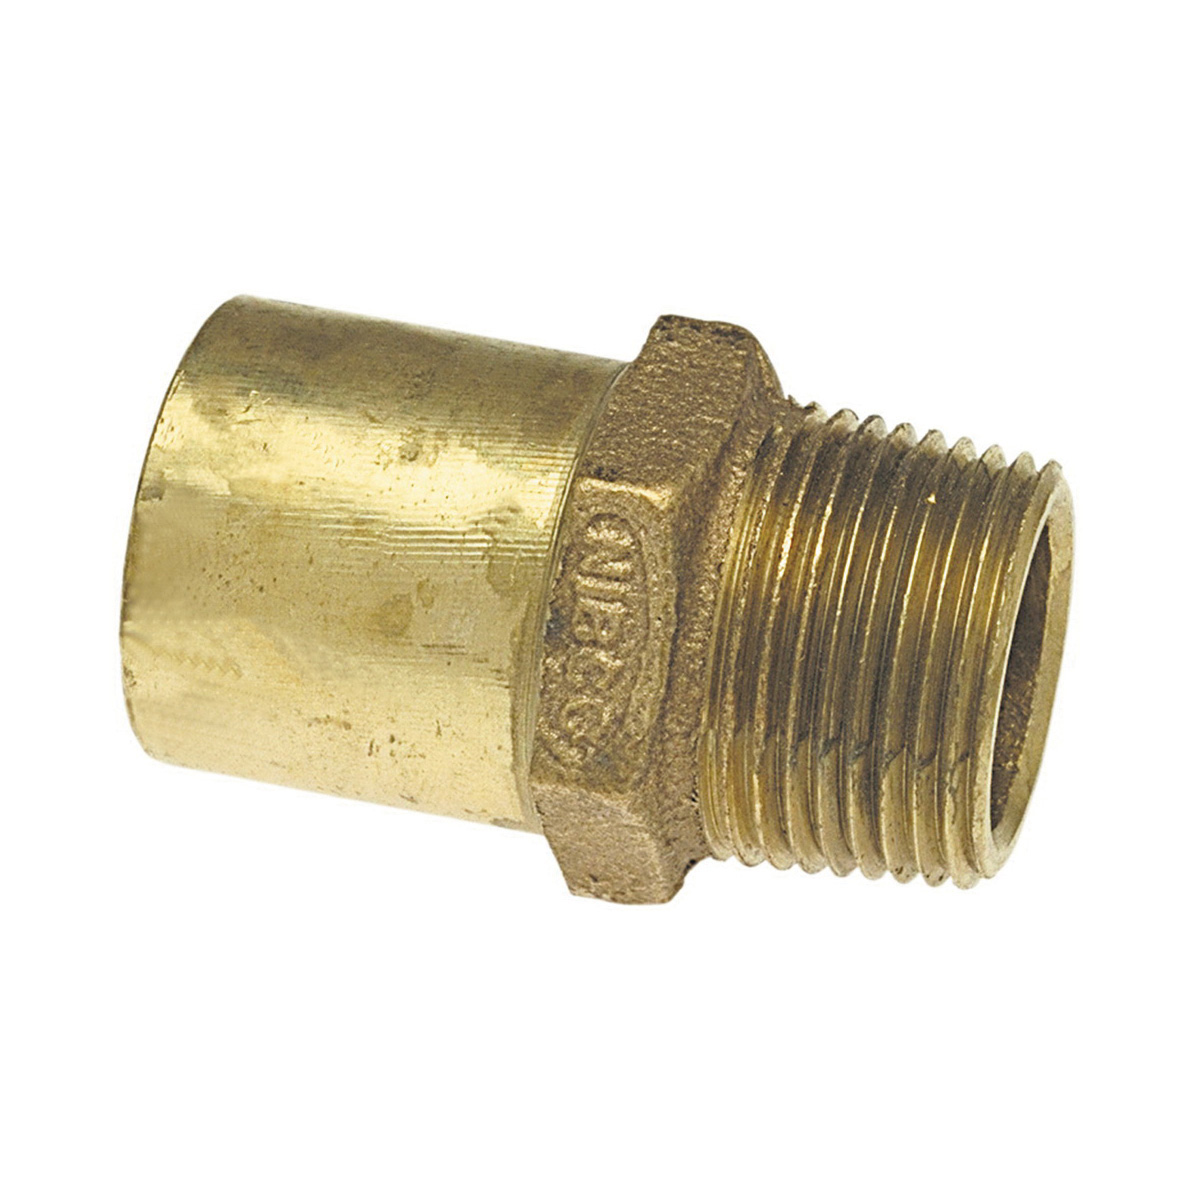 NIBCO® B034400 704-2R Drop Adapter, 1 x 3/4 in Nominal, Fitting x MNPT End Style, Bronze, Import